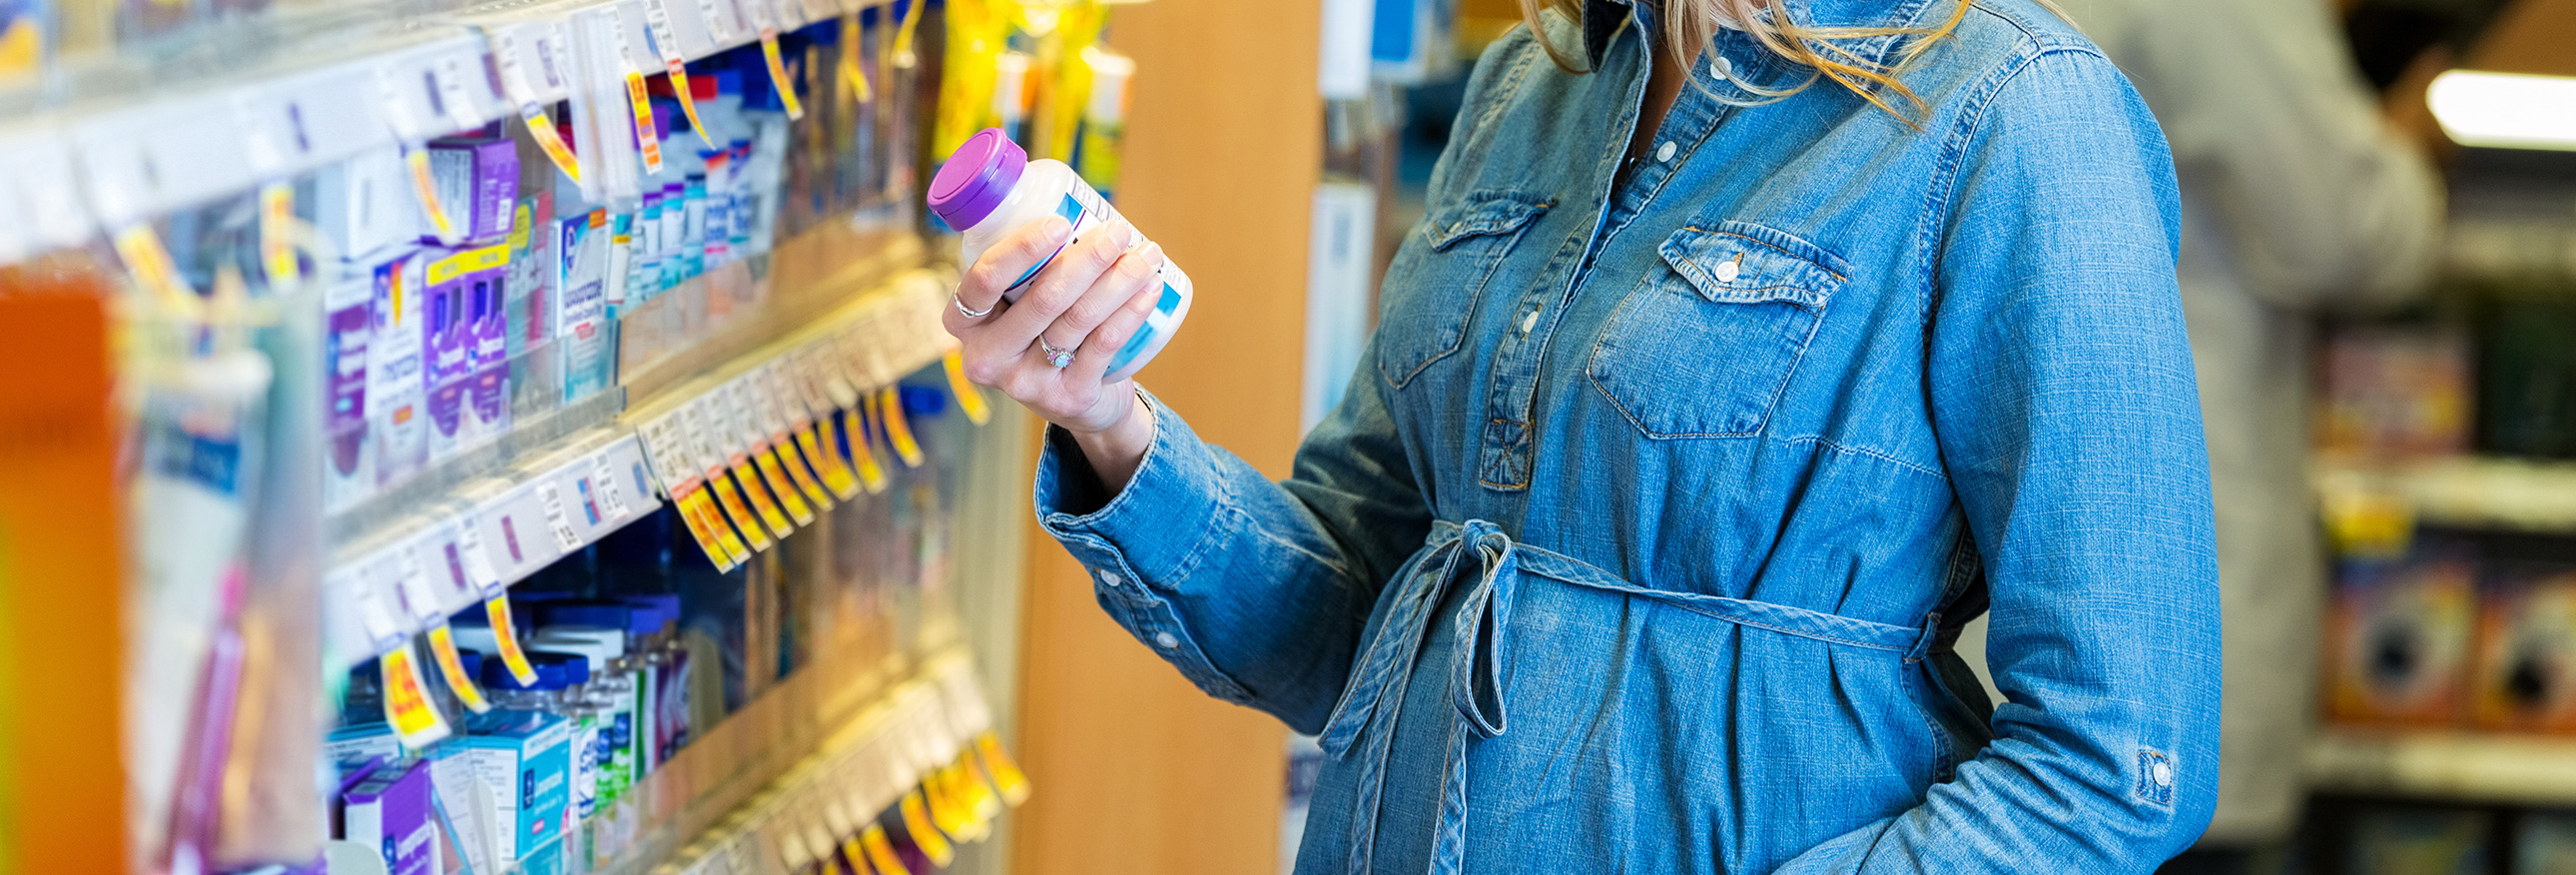 woman browsing vitamin bottles in a store